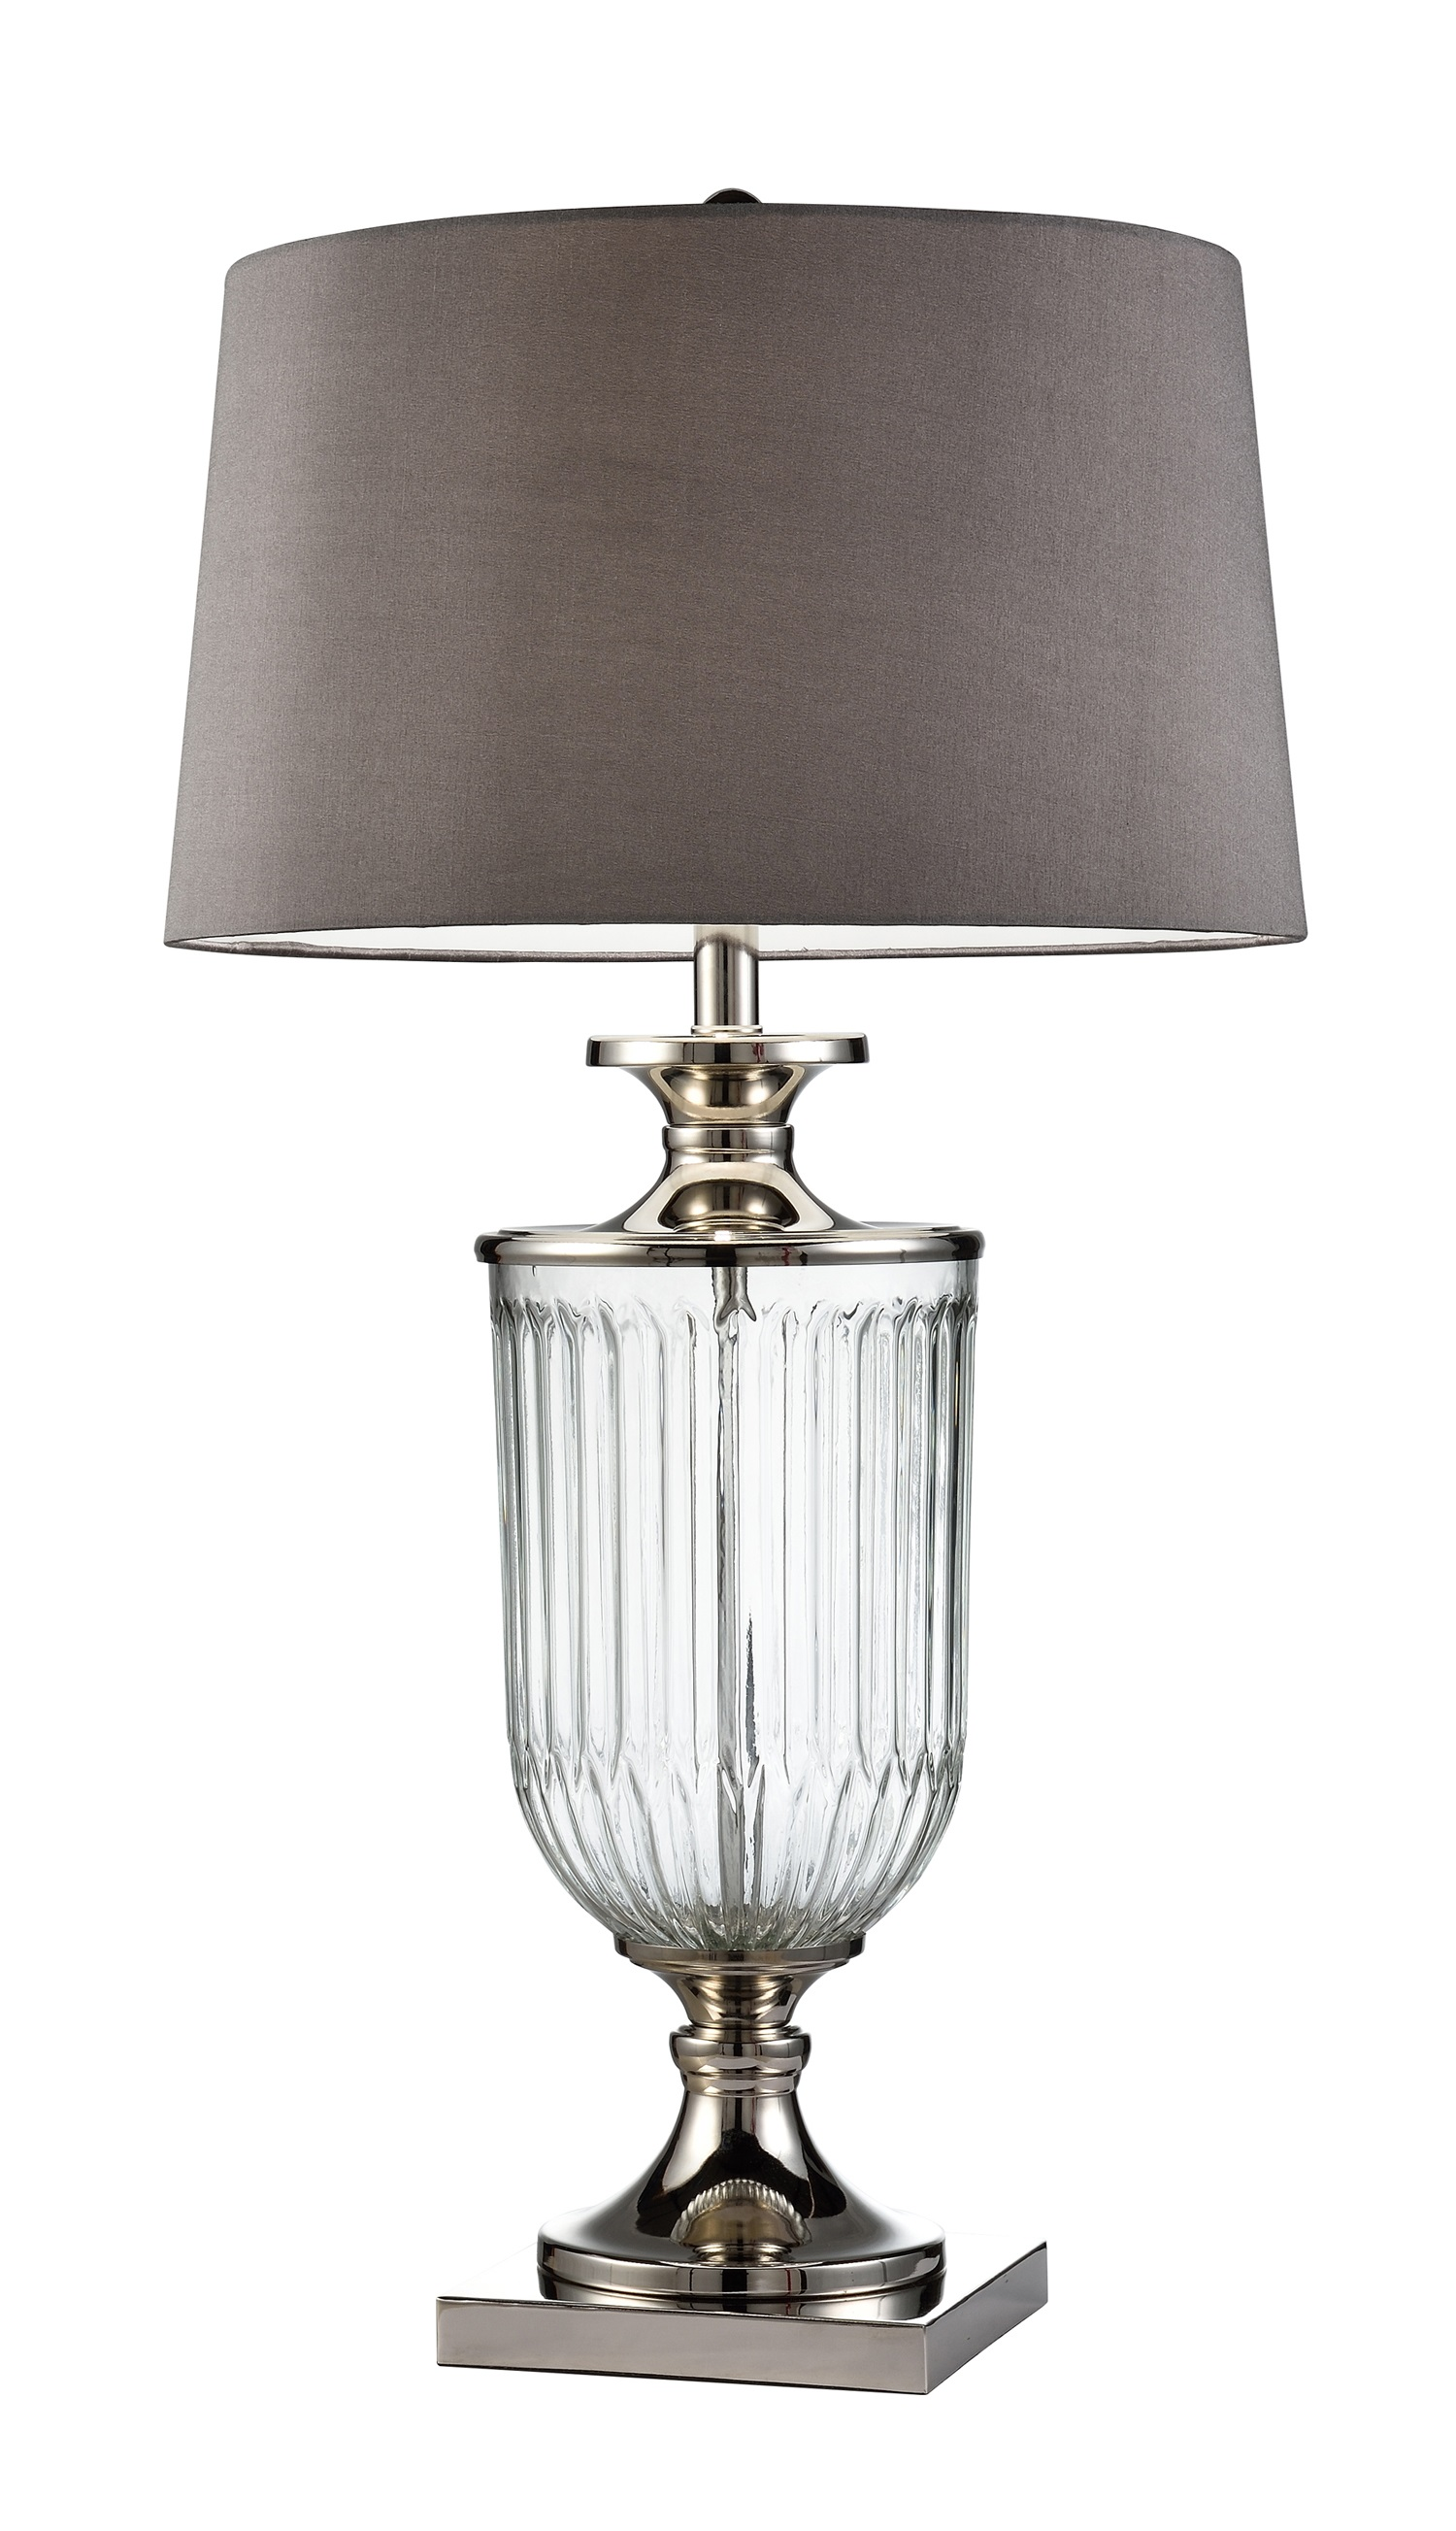 32 5 Tall Glass Table Lamp Amelia With Clear Glass Finish Grey